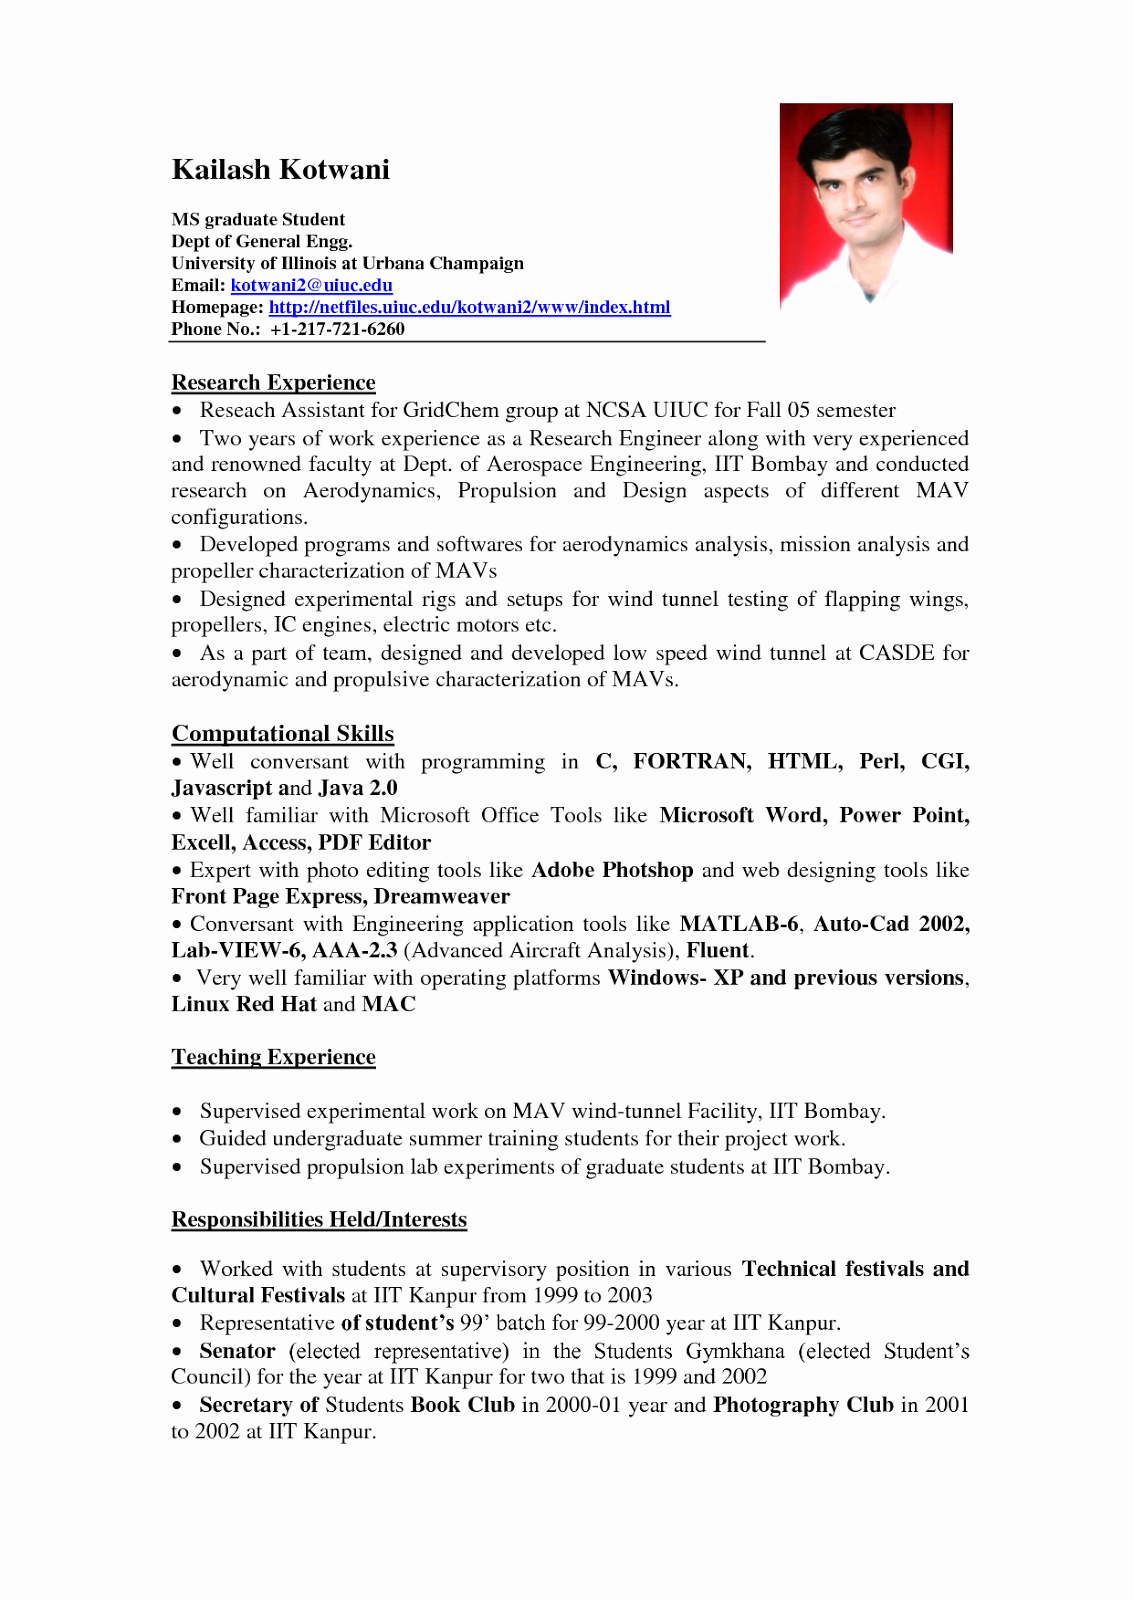 Simple Resume Template for Students Awesome Sample Resume format for Students